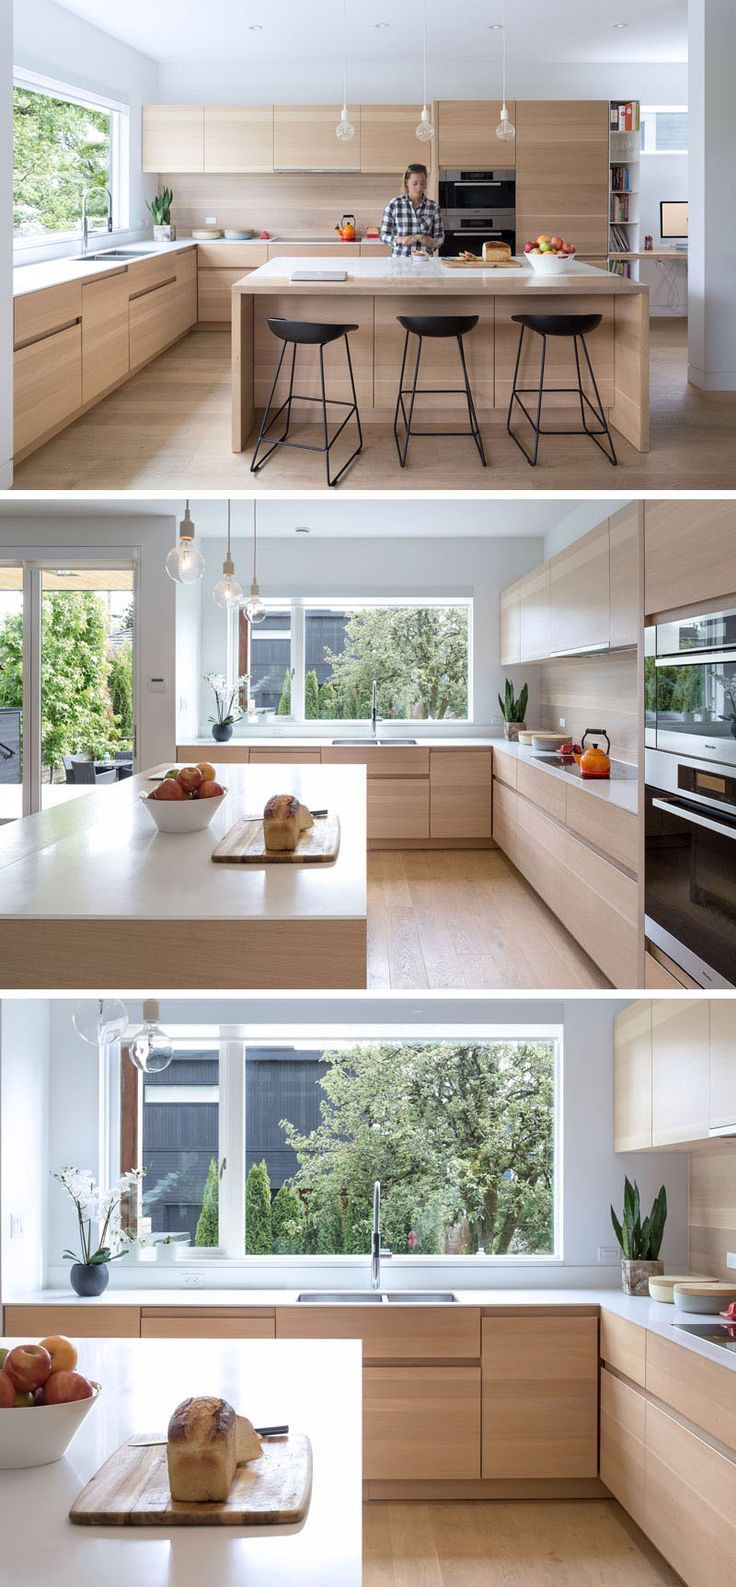 In this kitchen, a large window provides lots of natural light to ...